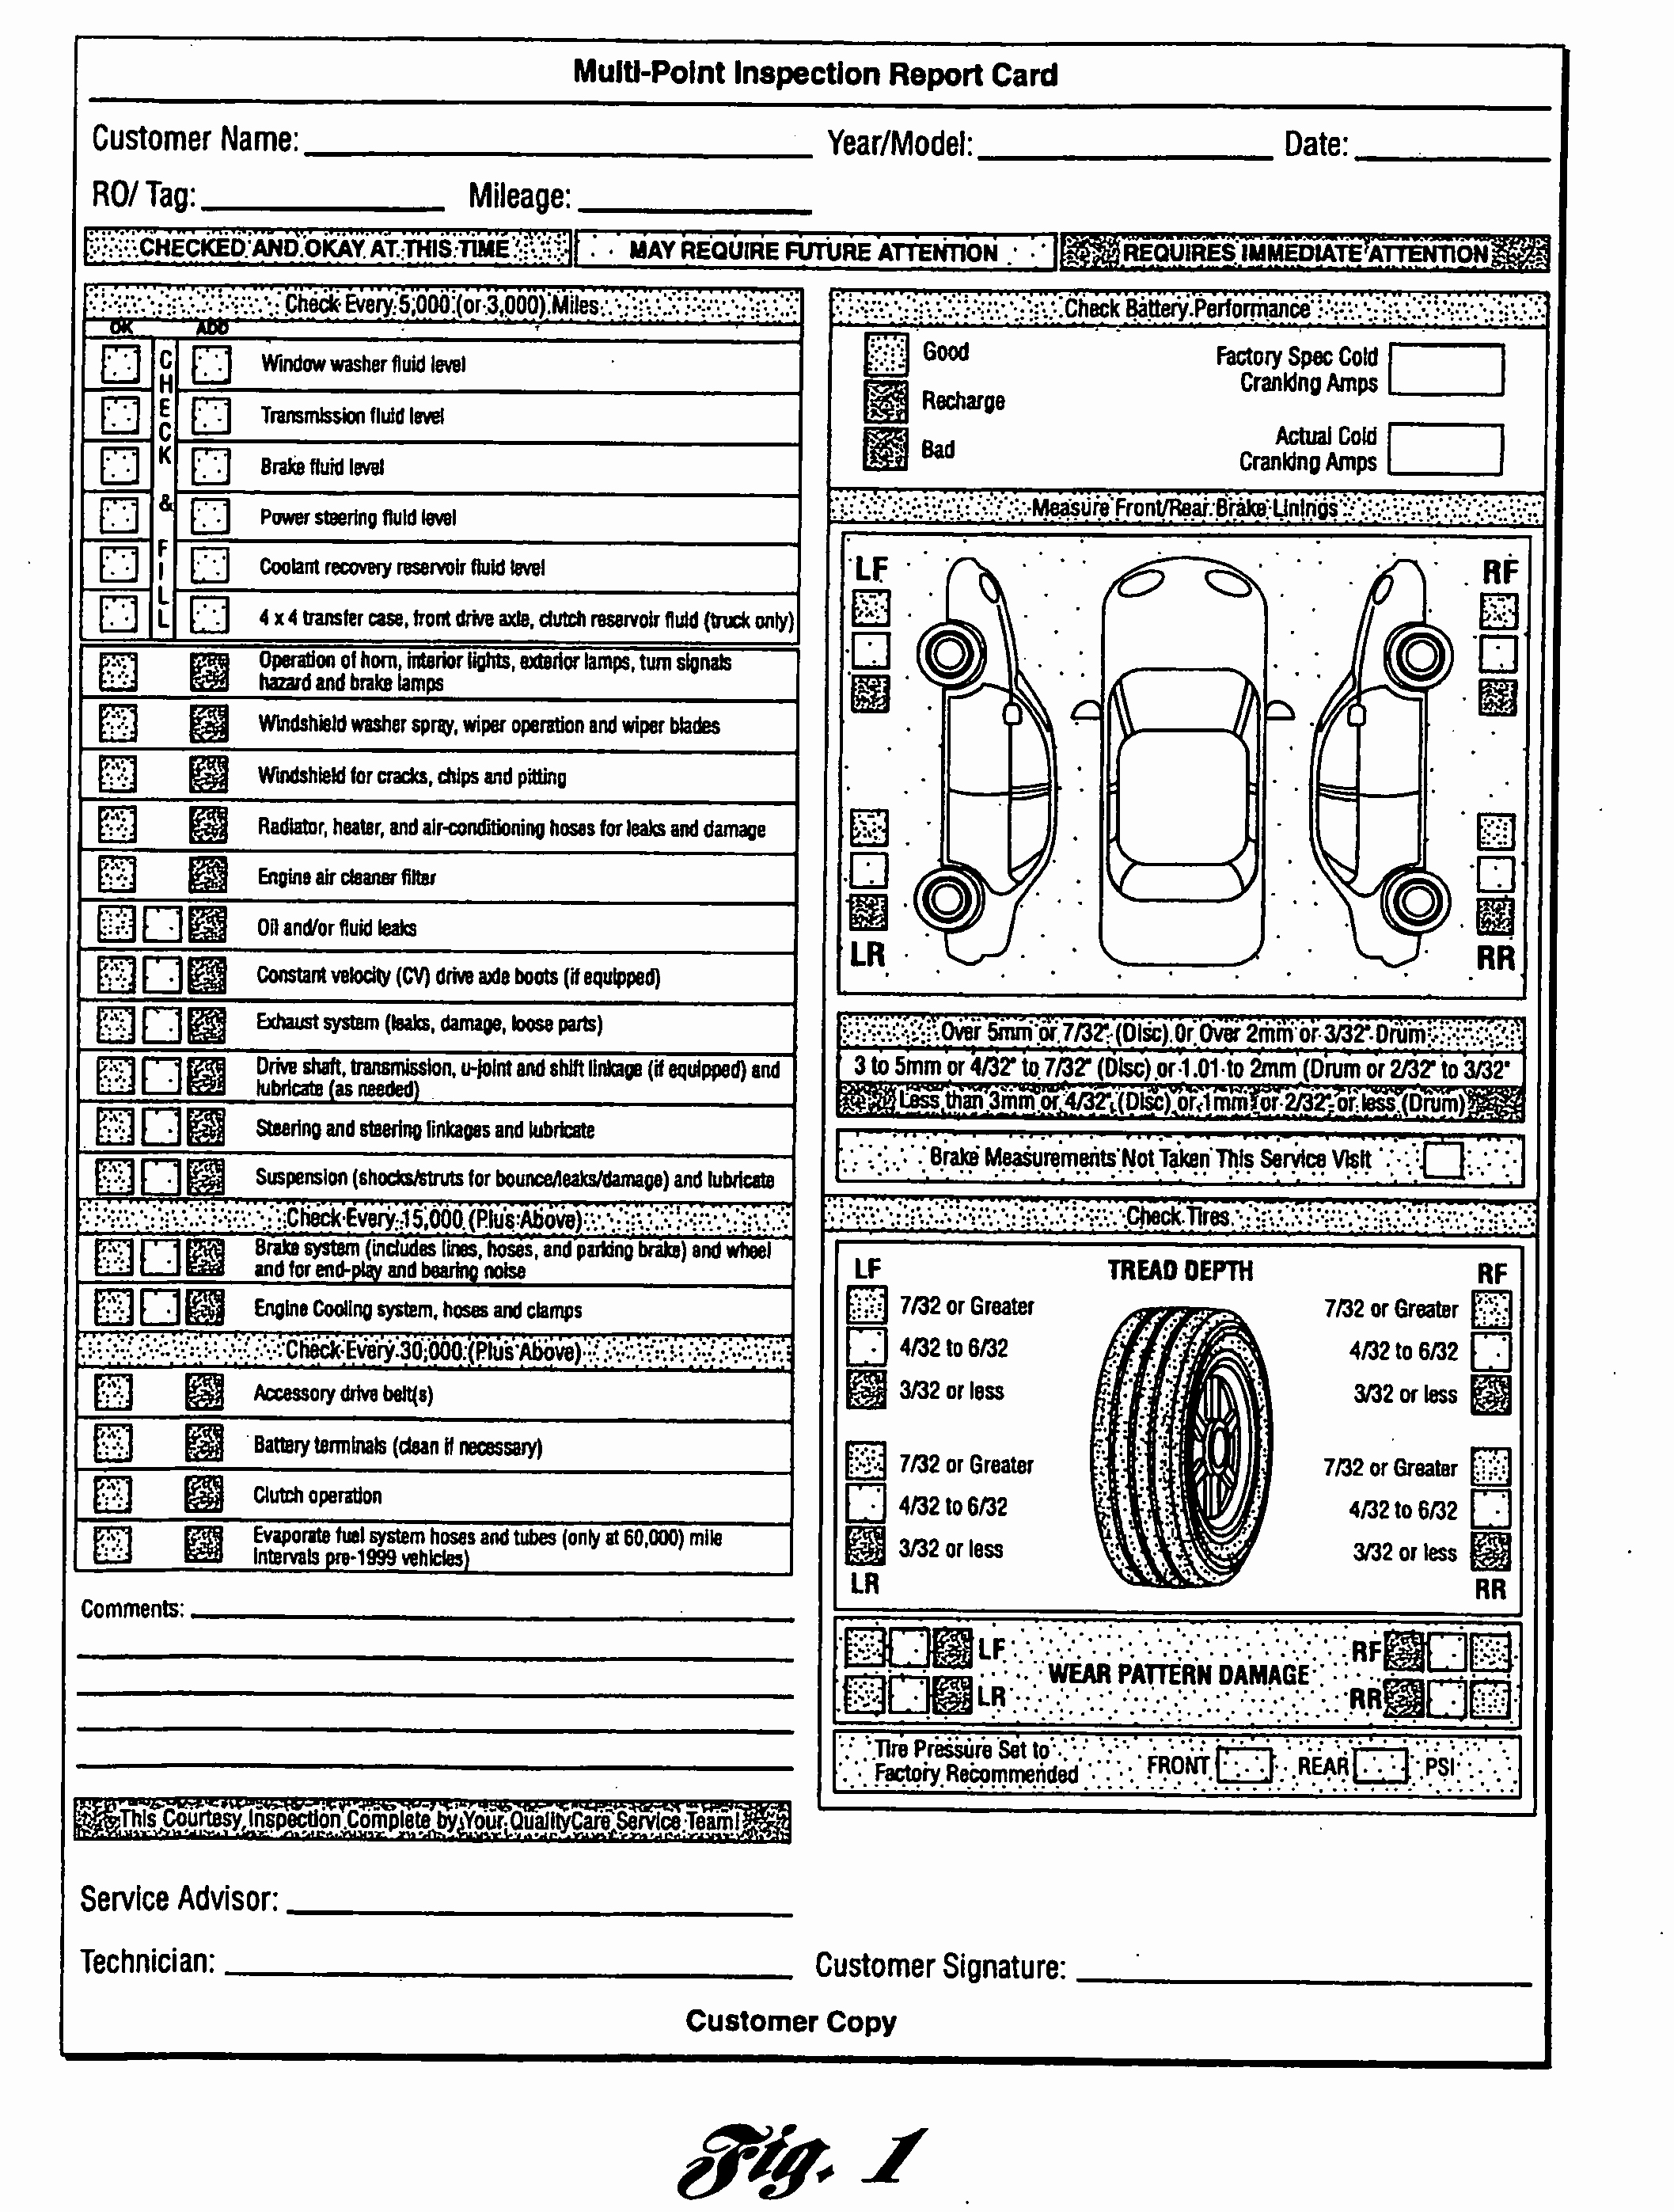 Car Inspection Checklist Template New Multi Point Inspection Report Card as Re Mended by ford